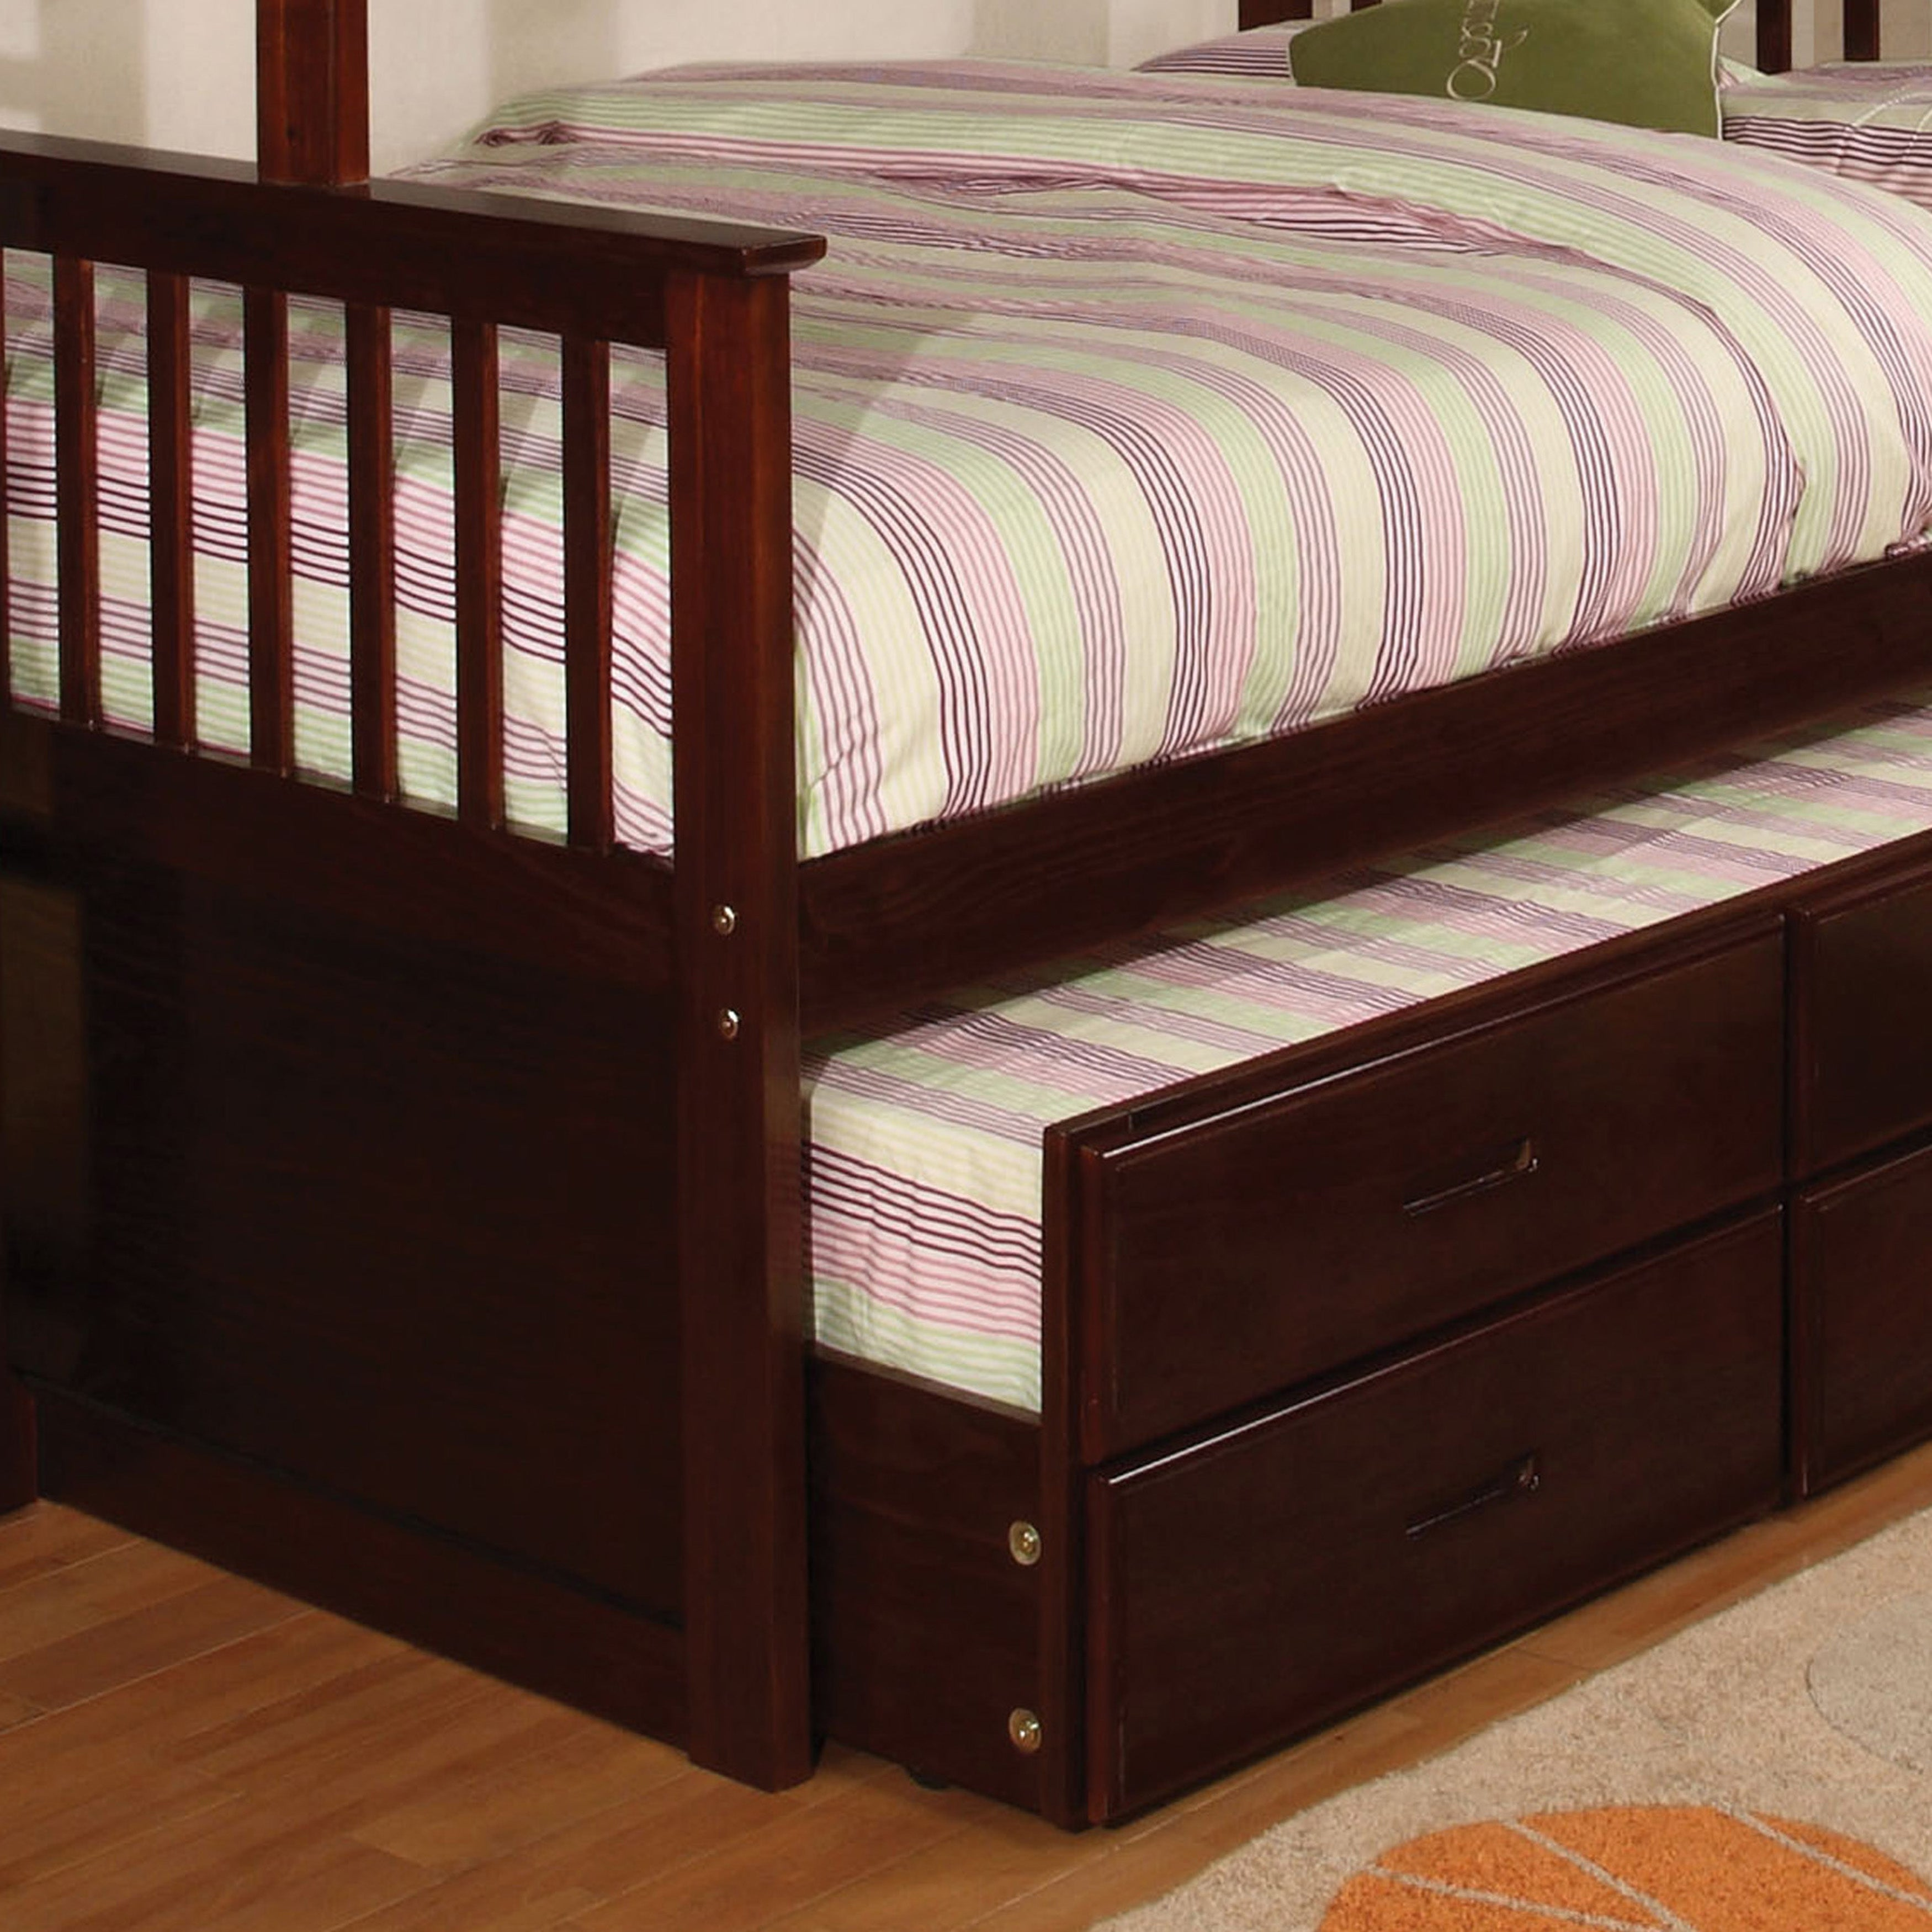 Picture of: Furniture Of America Rola Mission Twin Xl Queen Bunk Bed With Trundle Overstock 10302777